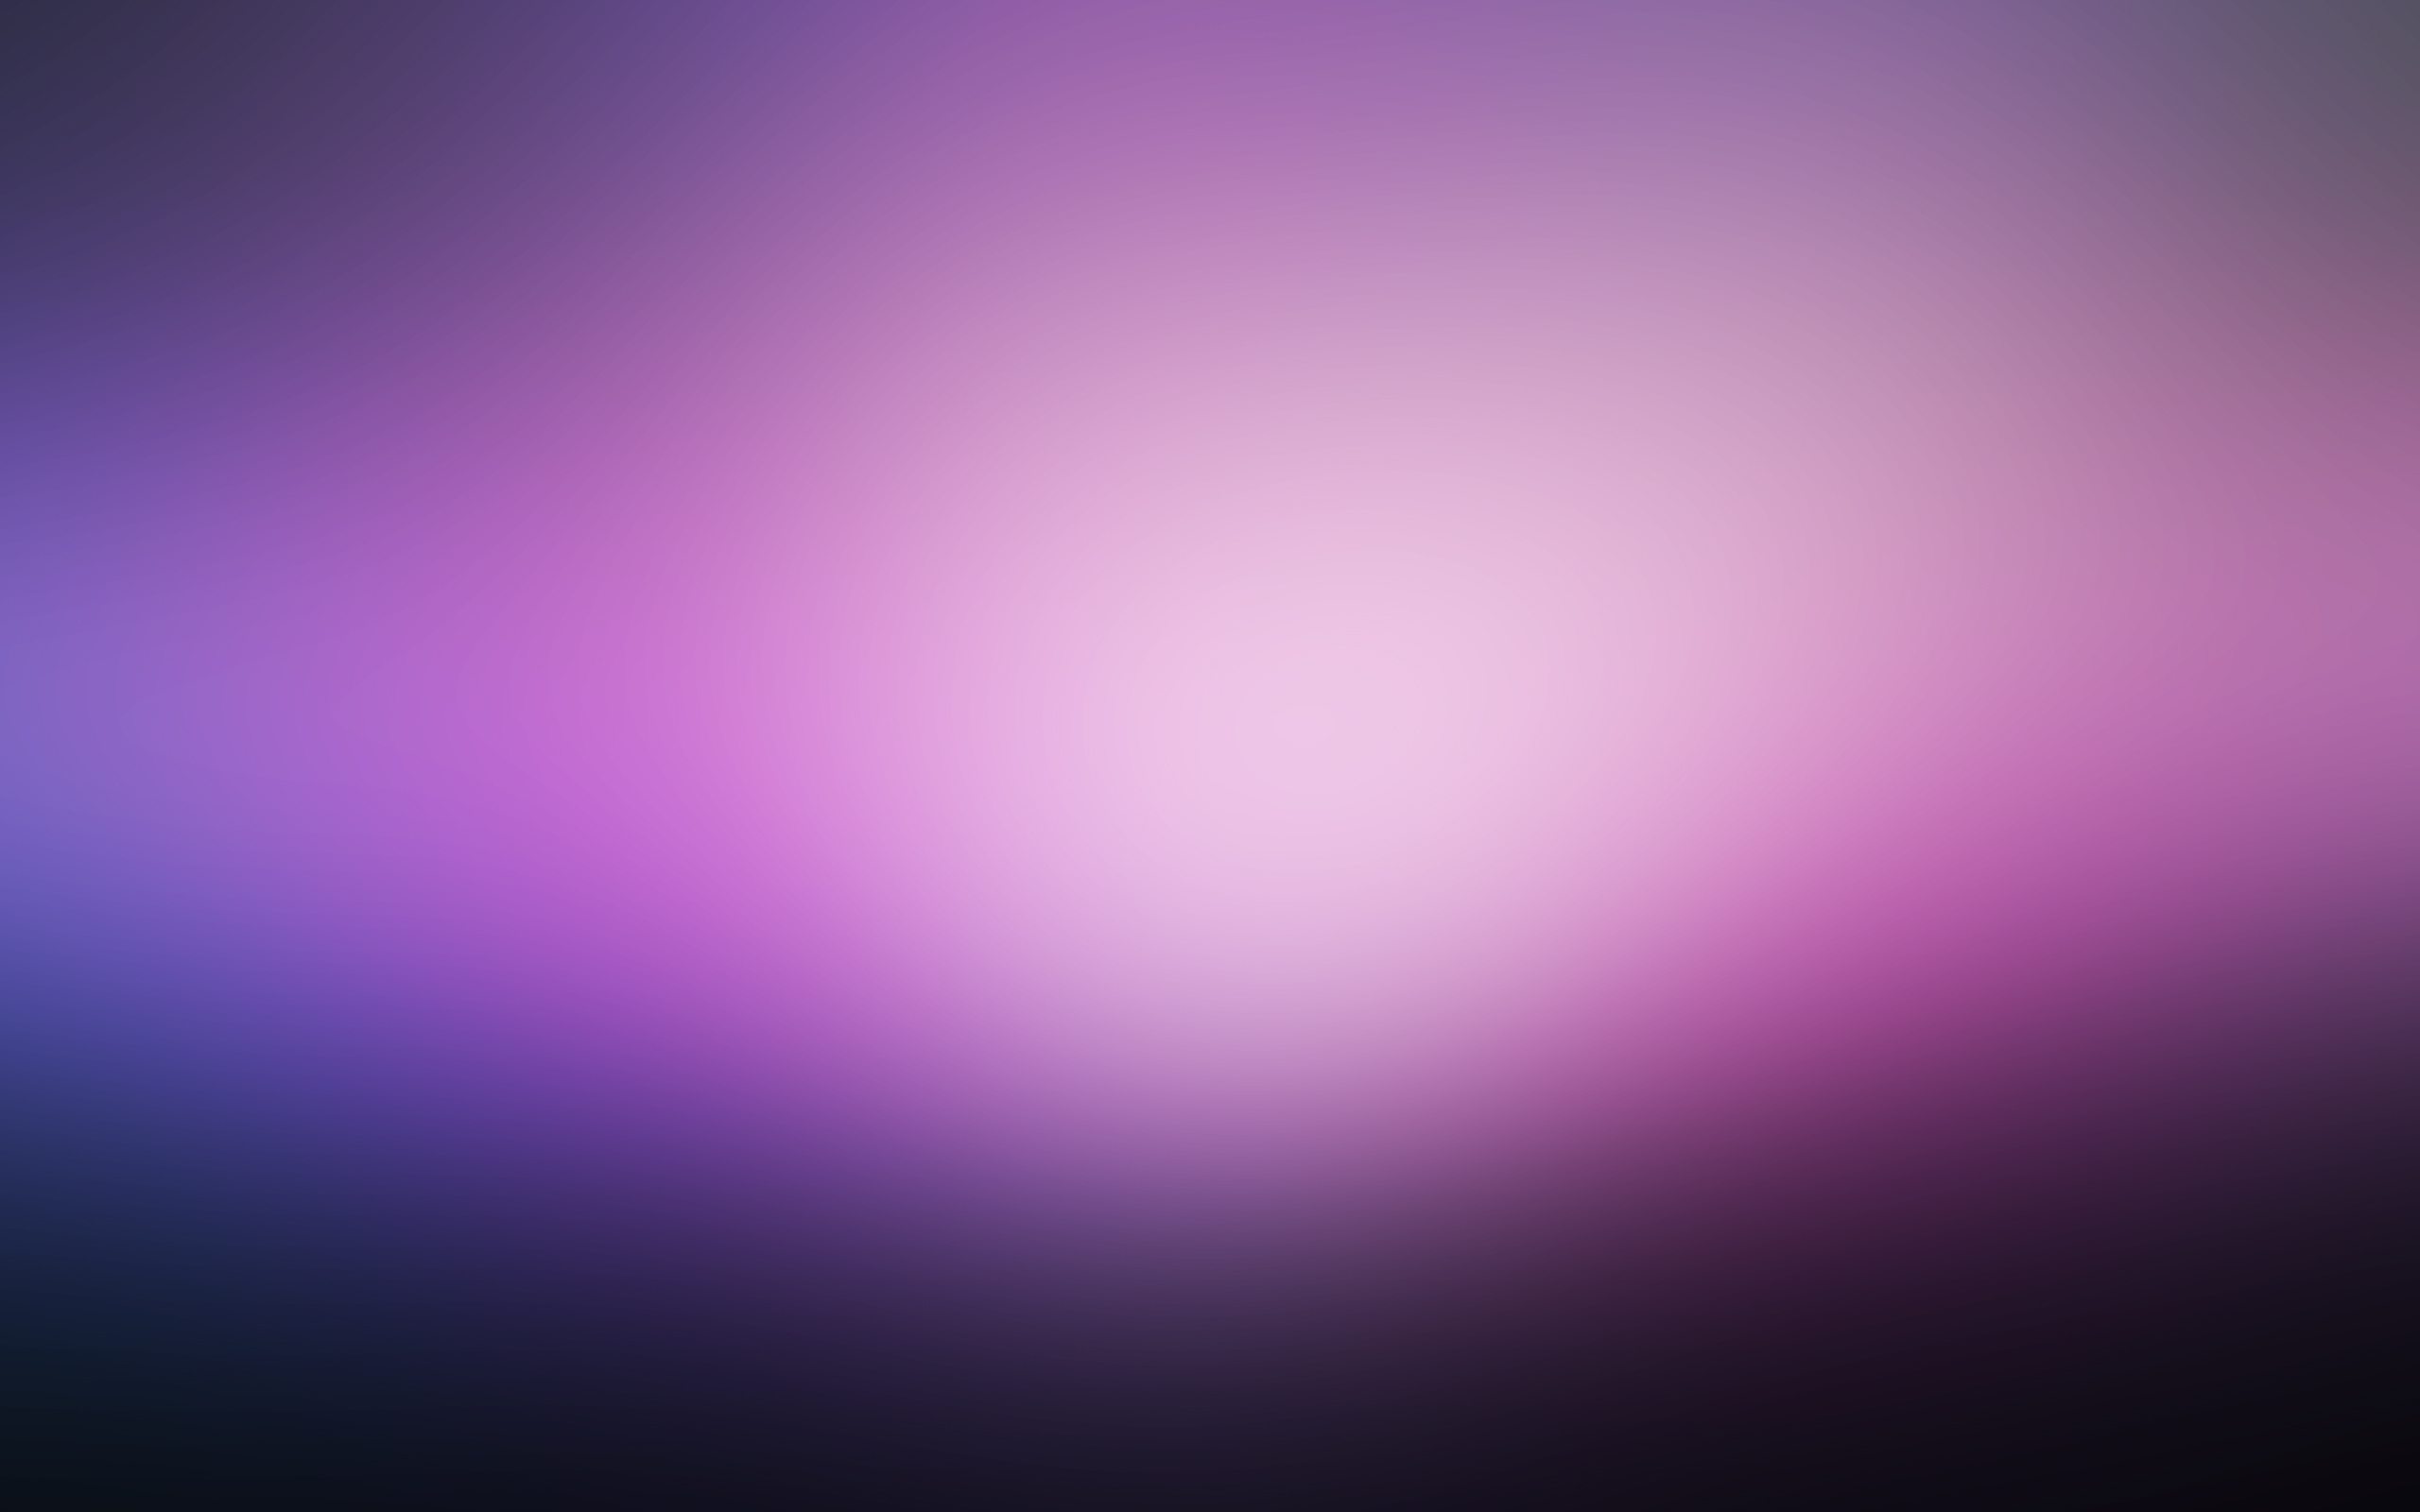 blur wallpapers free - photo #19